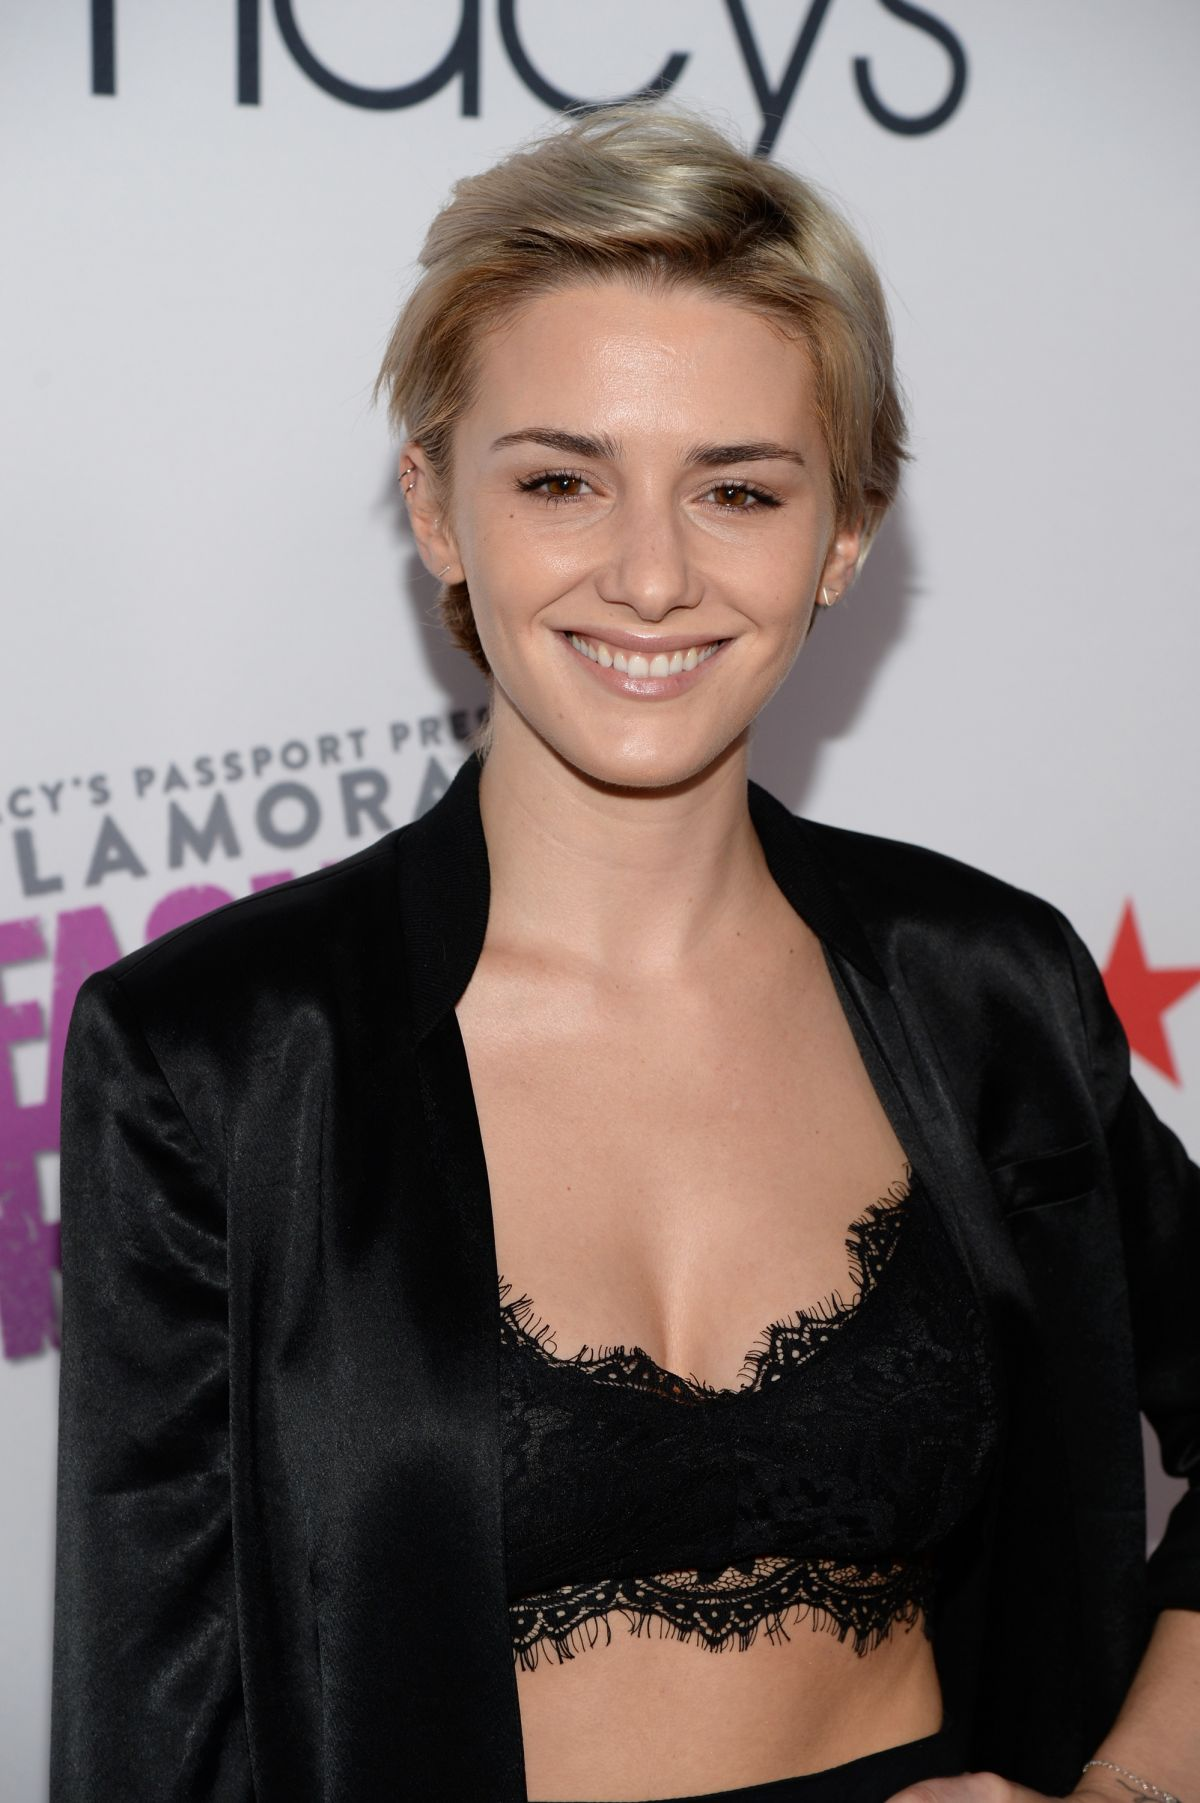 Addison timlin at glamorama fashion rocks event in los for Emily addison nyc